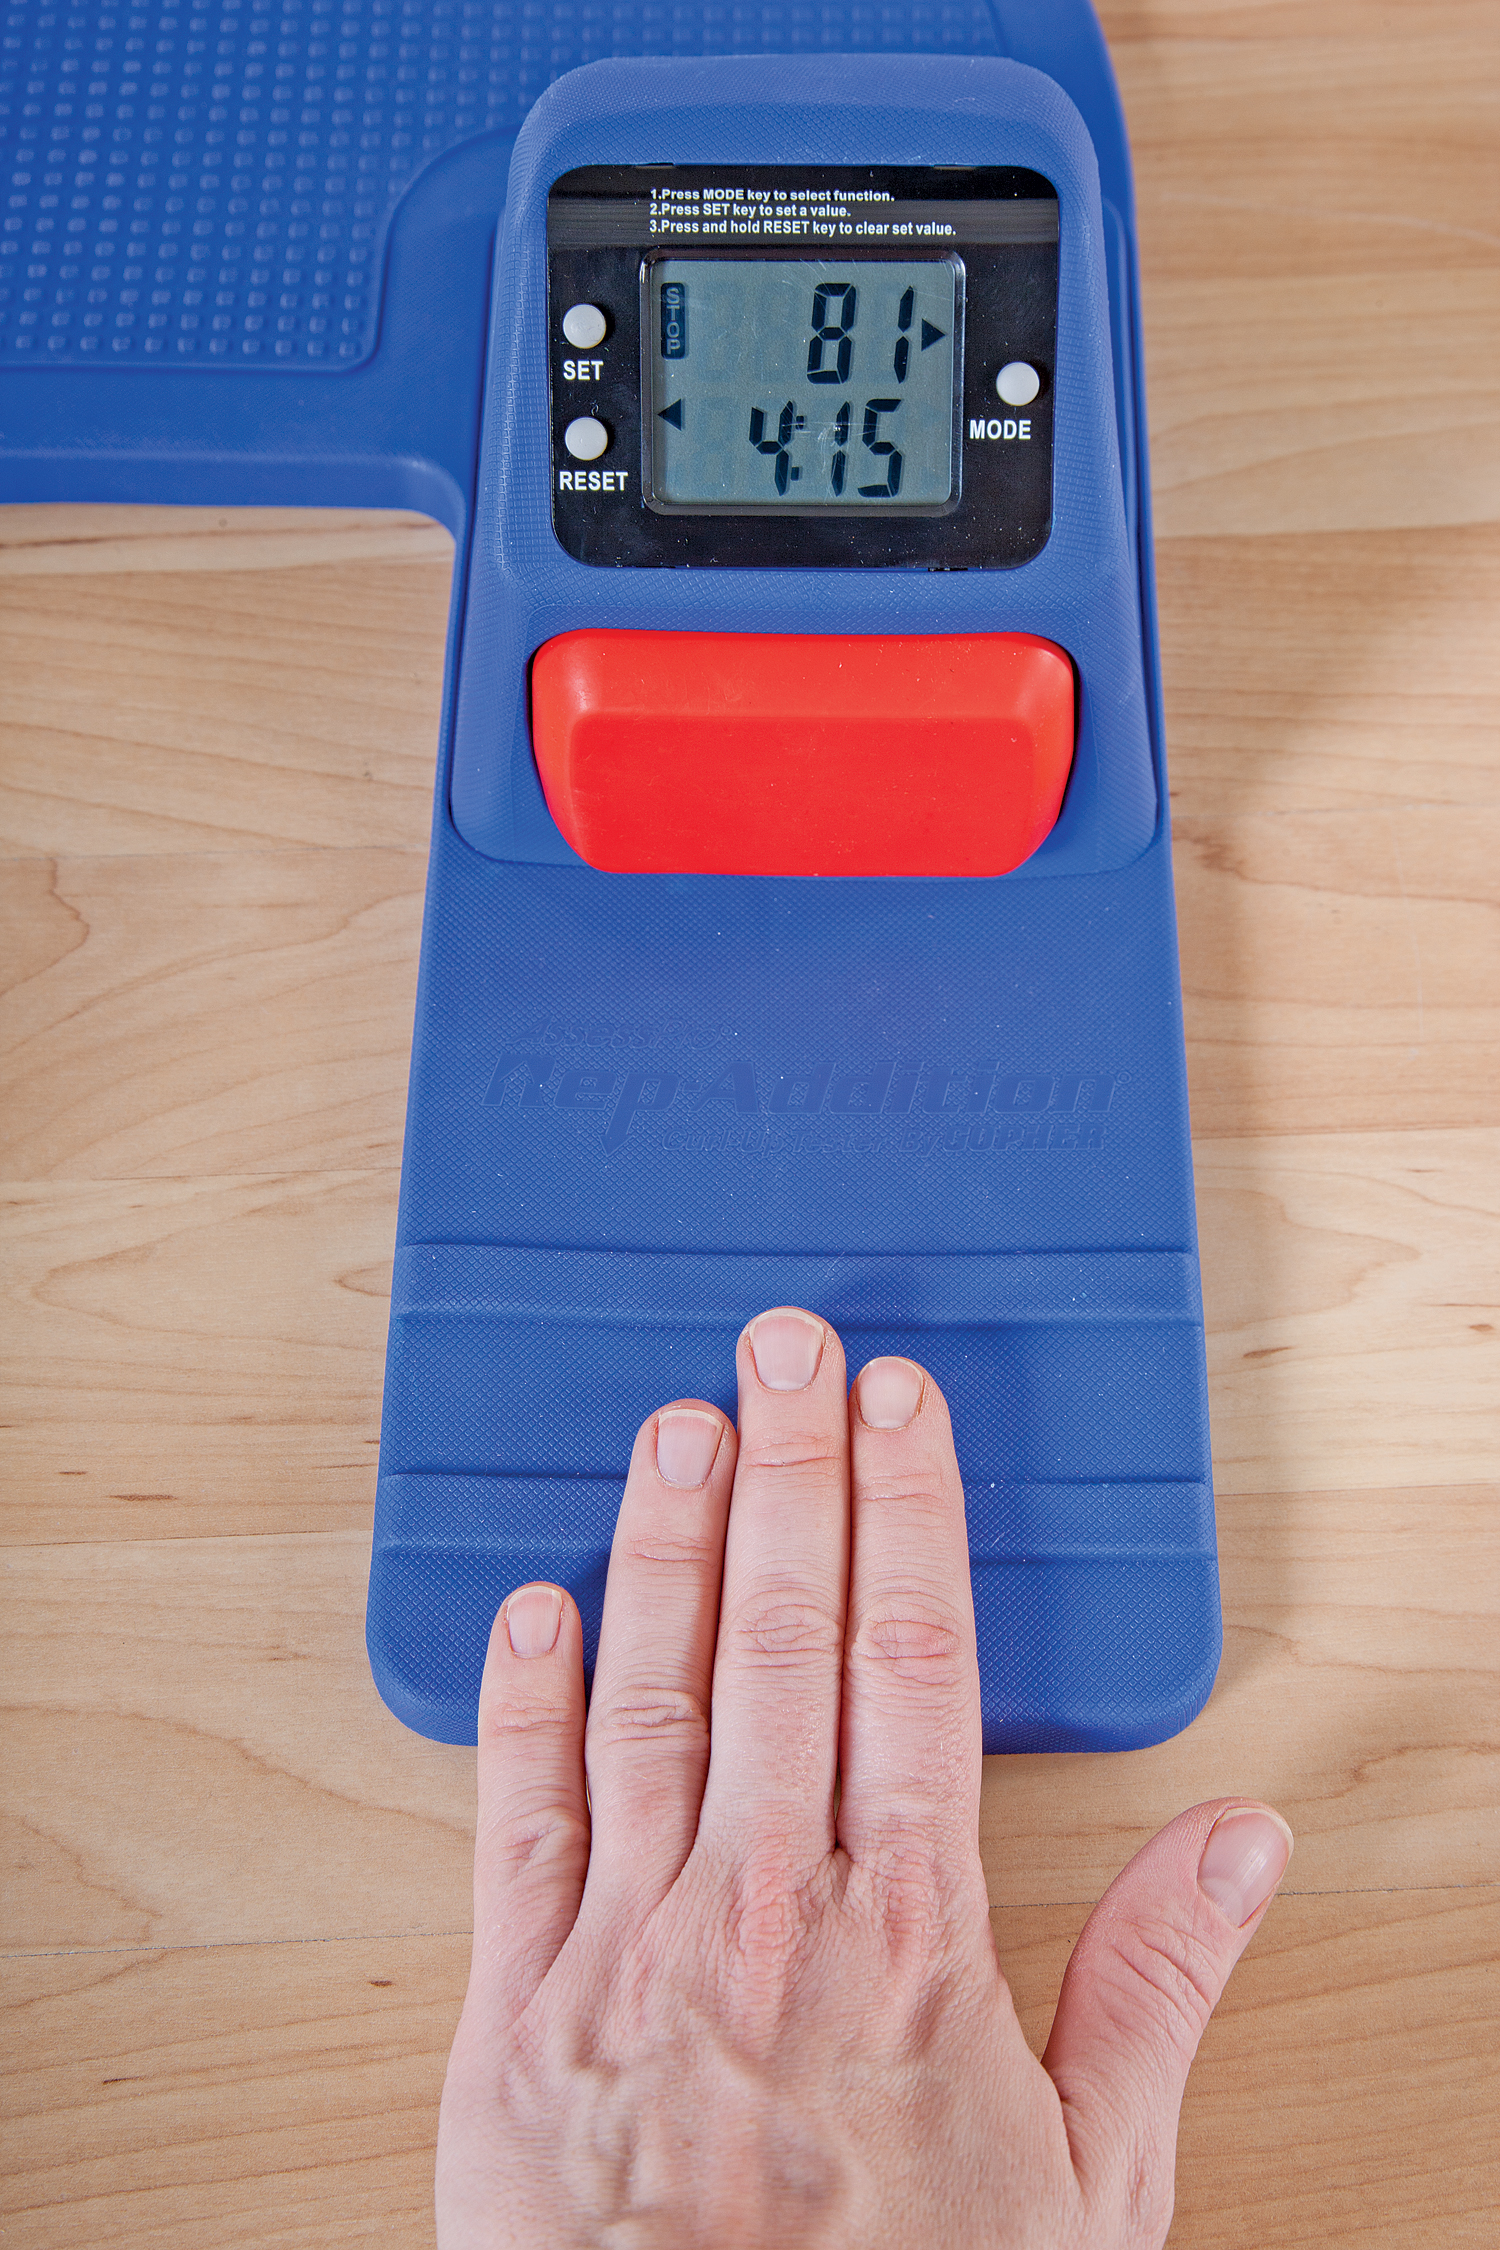 Hand showing counter on testing machine